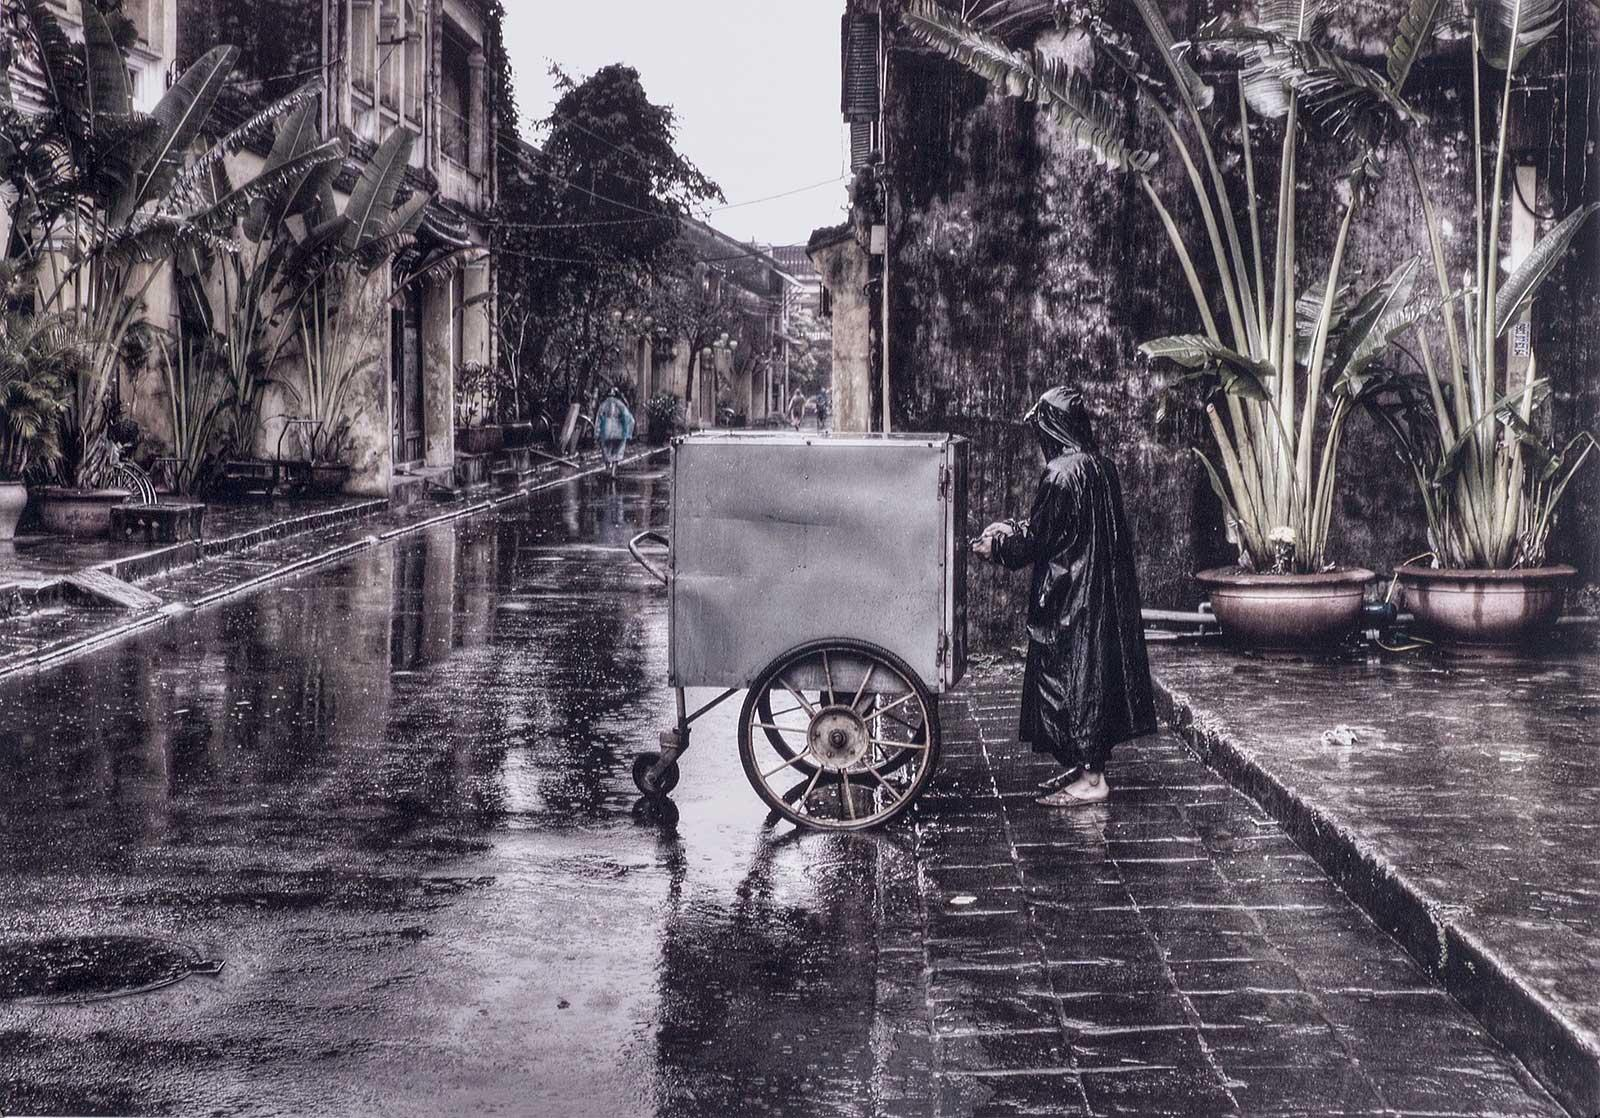 Early Morning (an atmospheric sense of a lone figure in Hoi An, Vietnam)